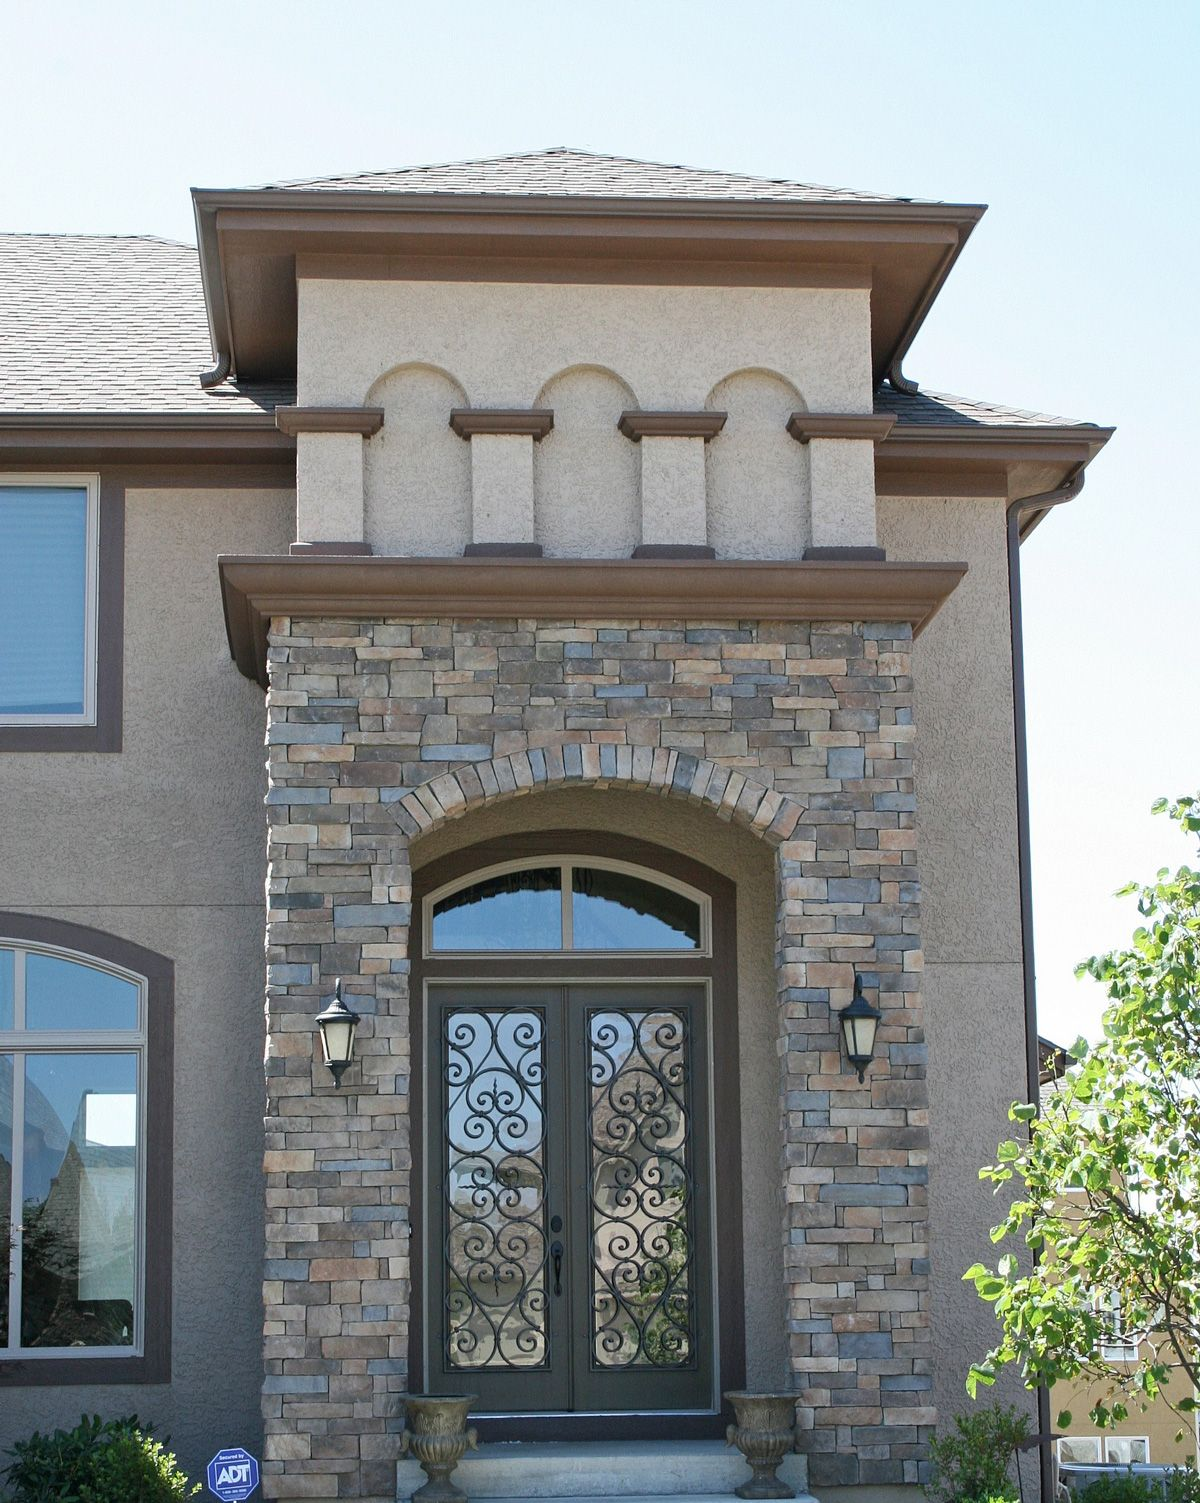 Canyon ledge santa fe exterior stone veneers facade for Stucco facade